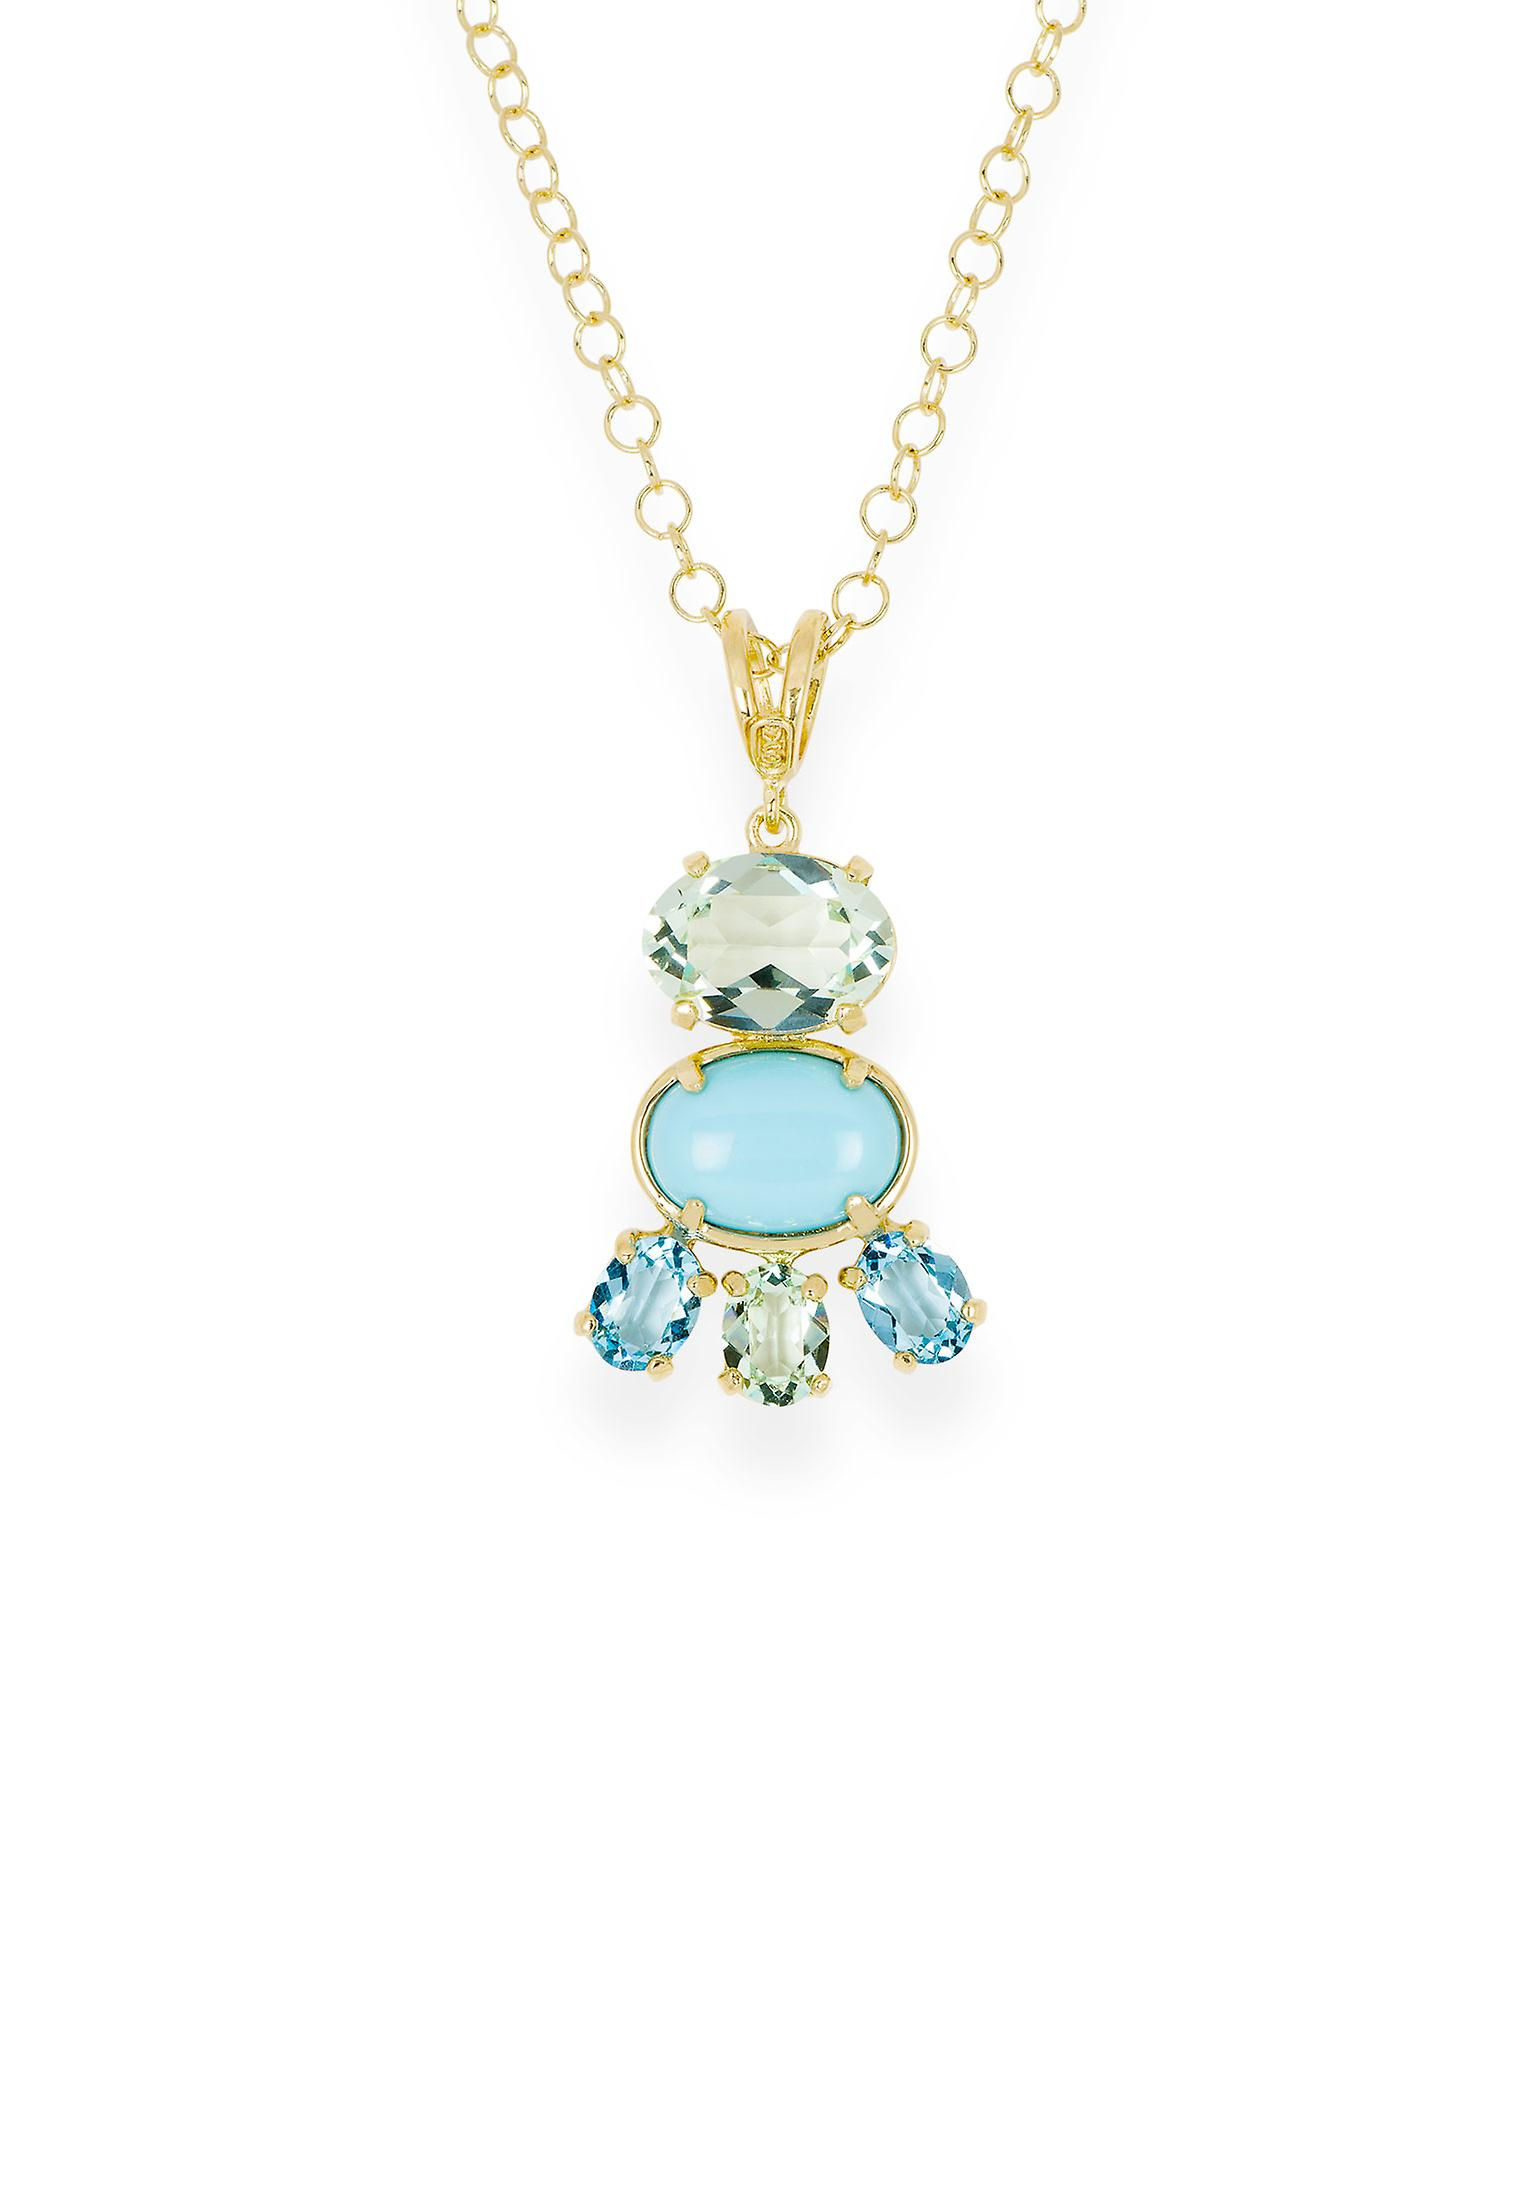 Multicolor pendant with crystals from Swarovski 9251